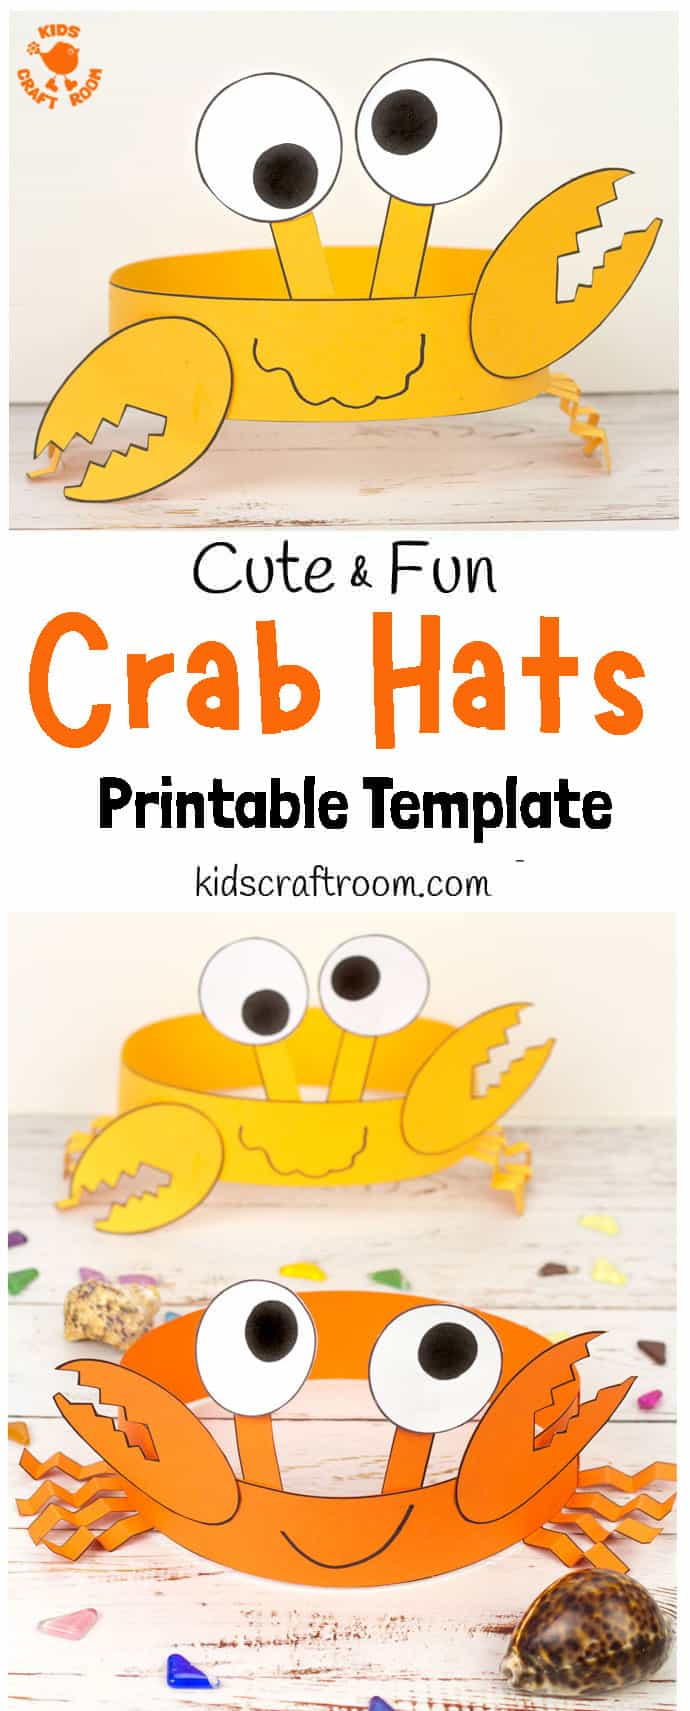 Fun Crab Hats - pin 1